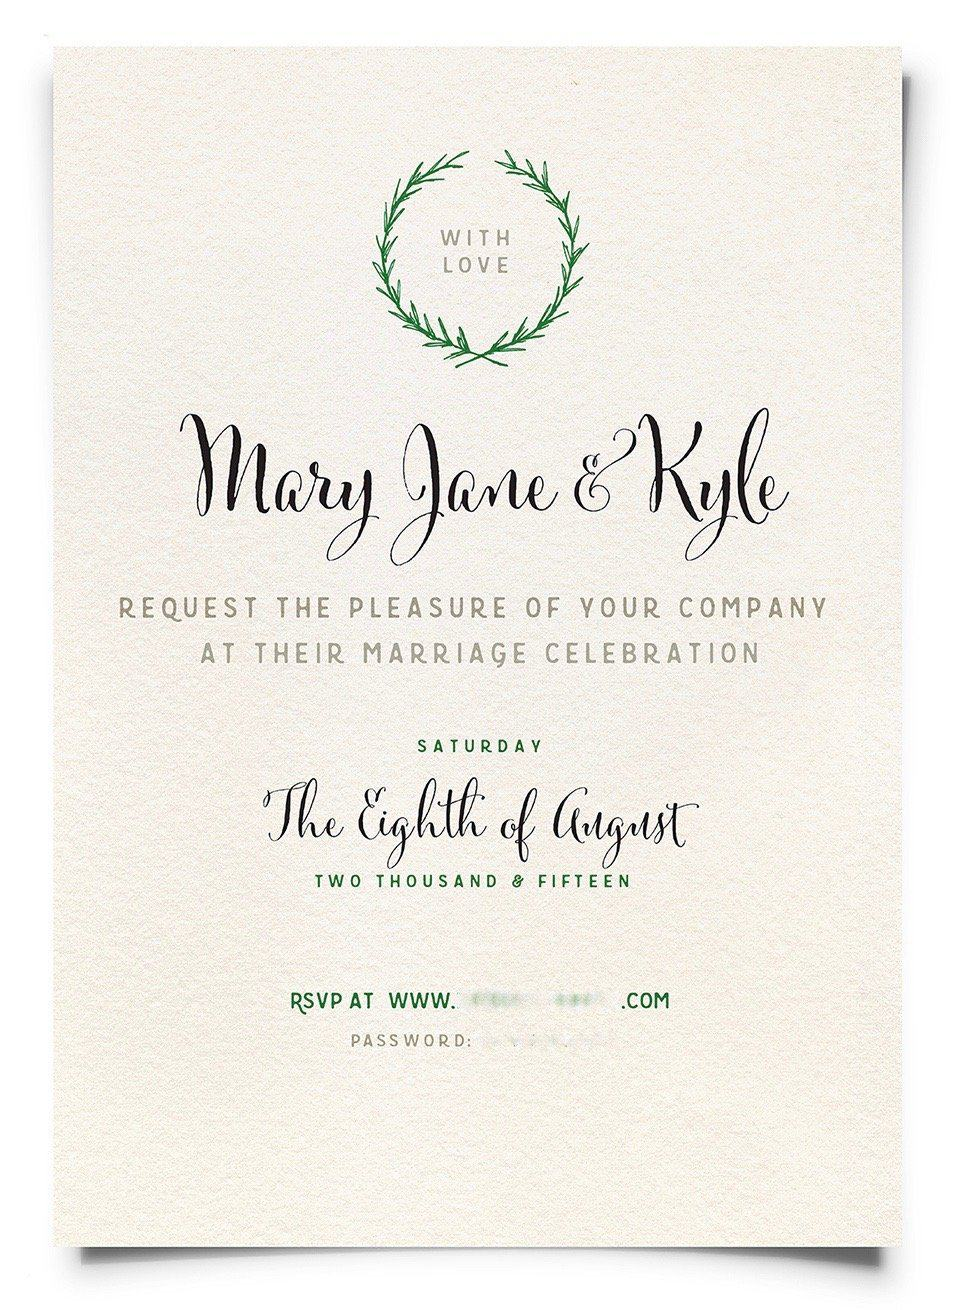 Designing your own DIY wedding e-vites is a simple alternative to mailing invitations | Home for the Harvest